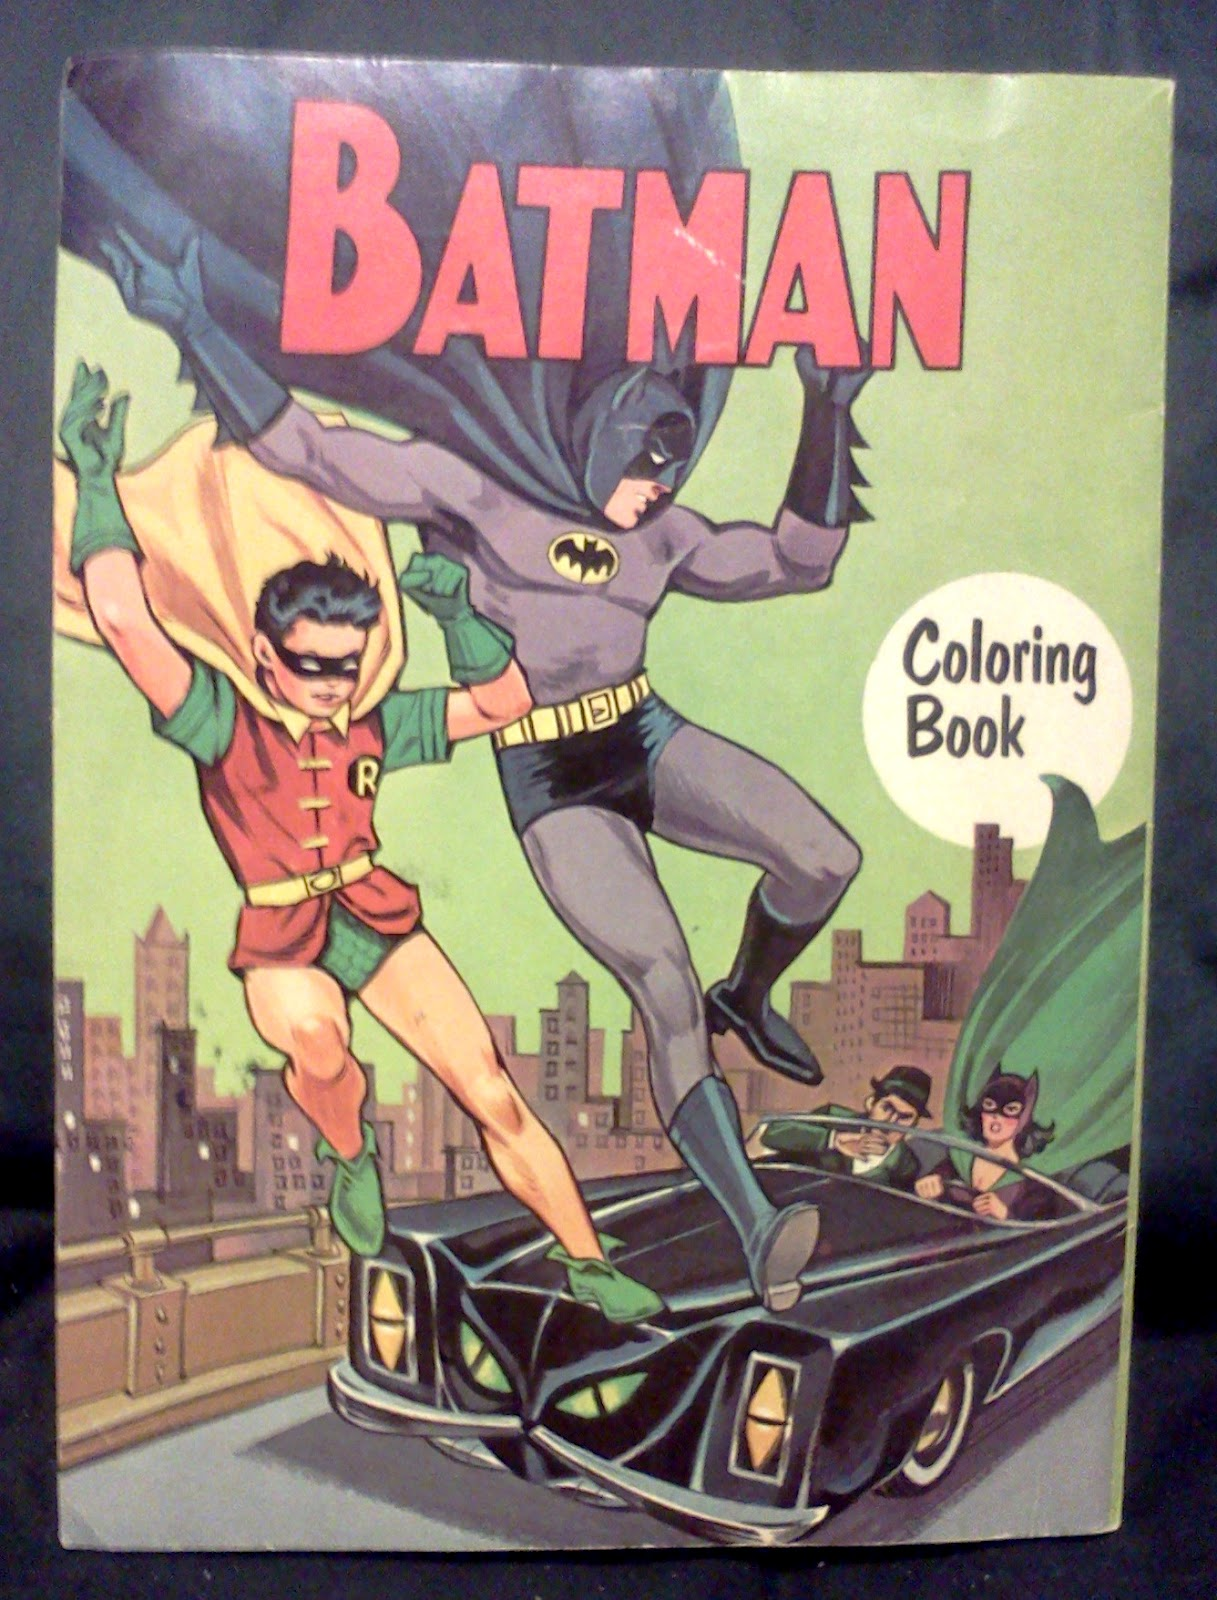 1966 Batman Coloring Book